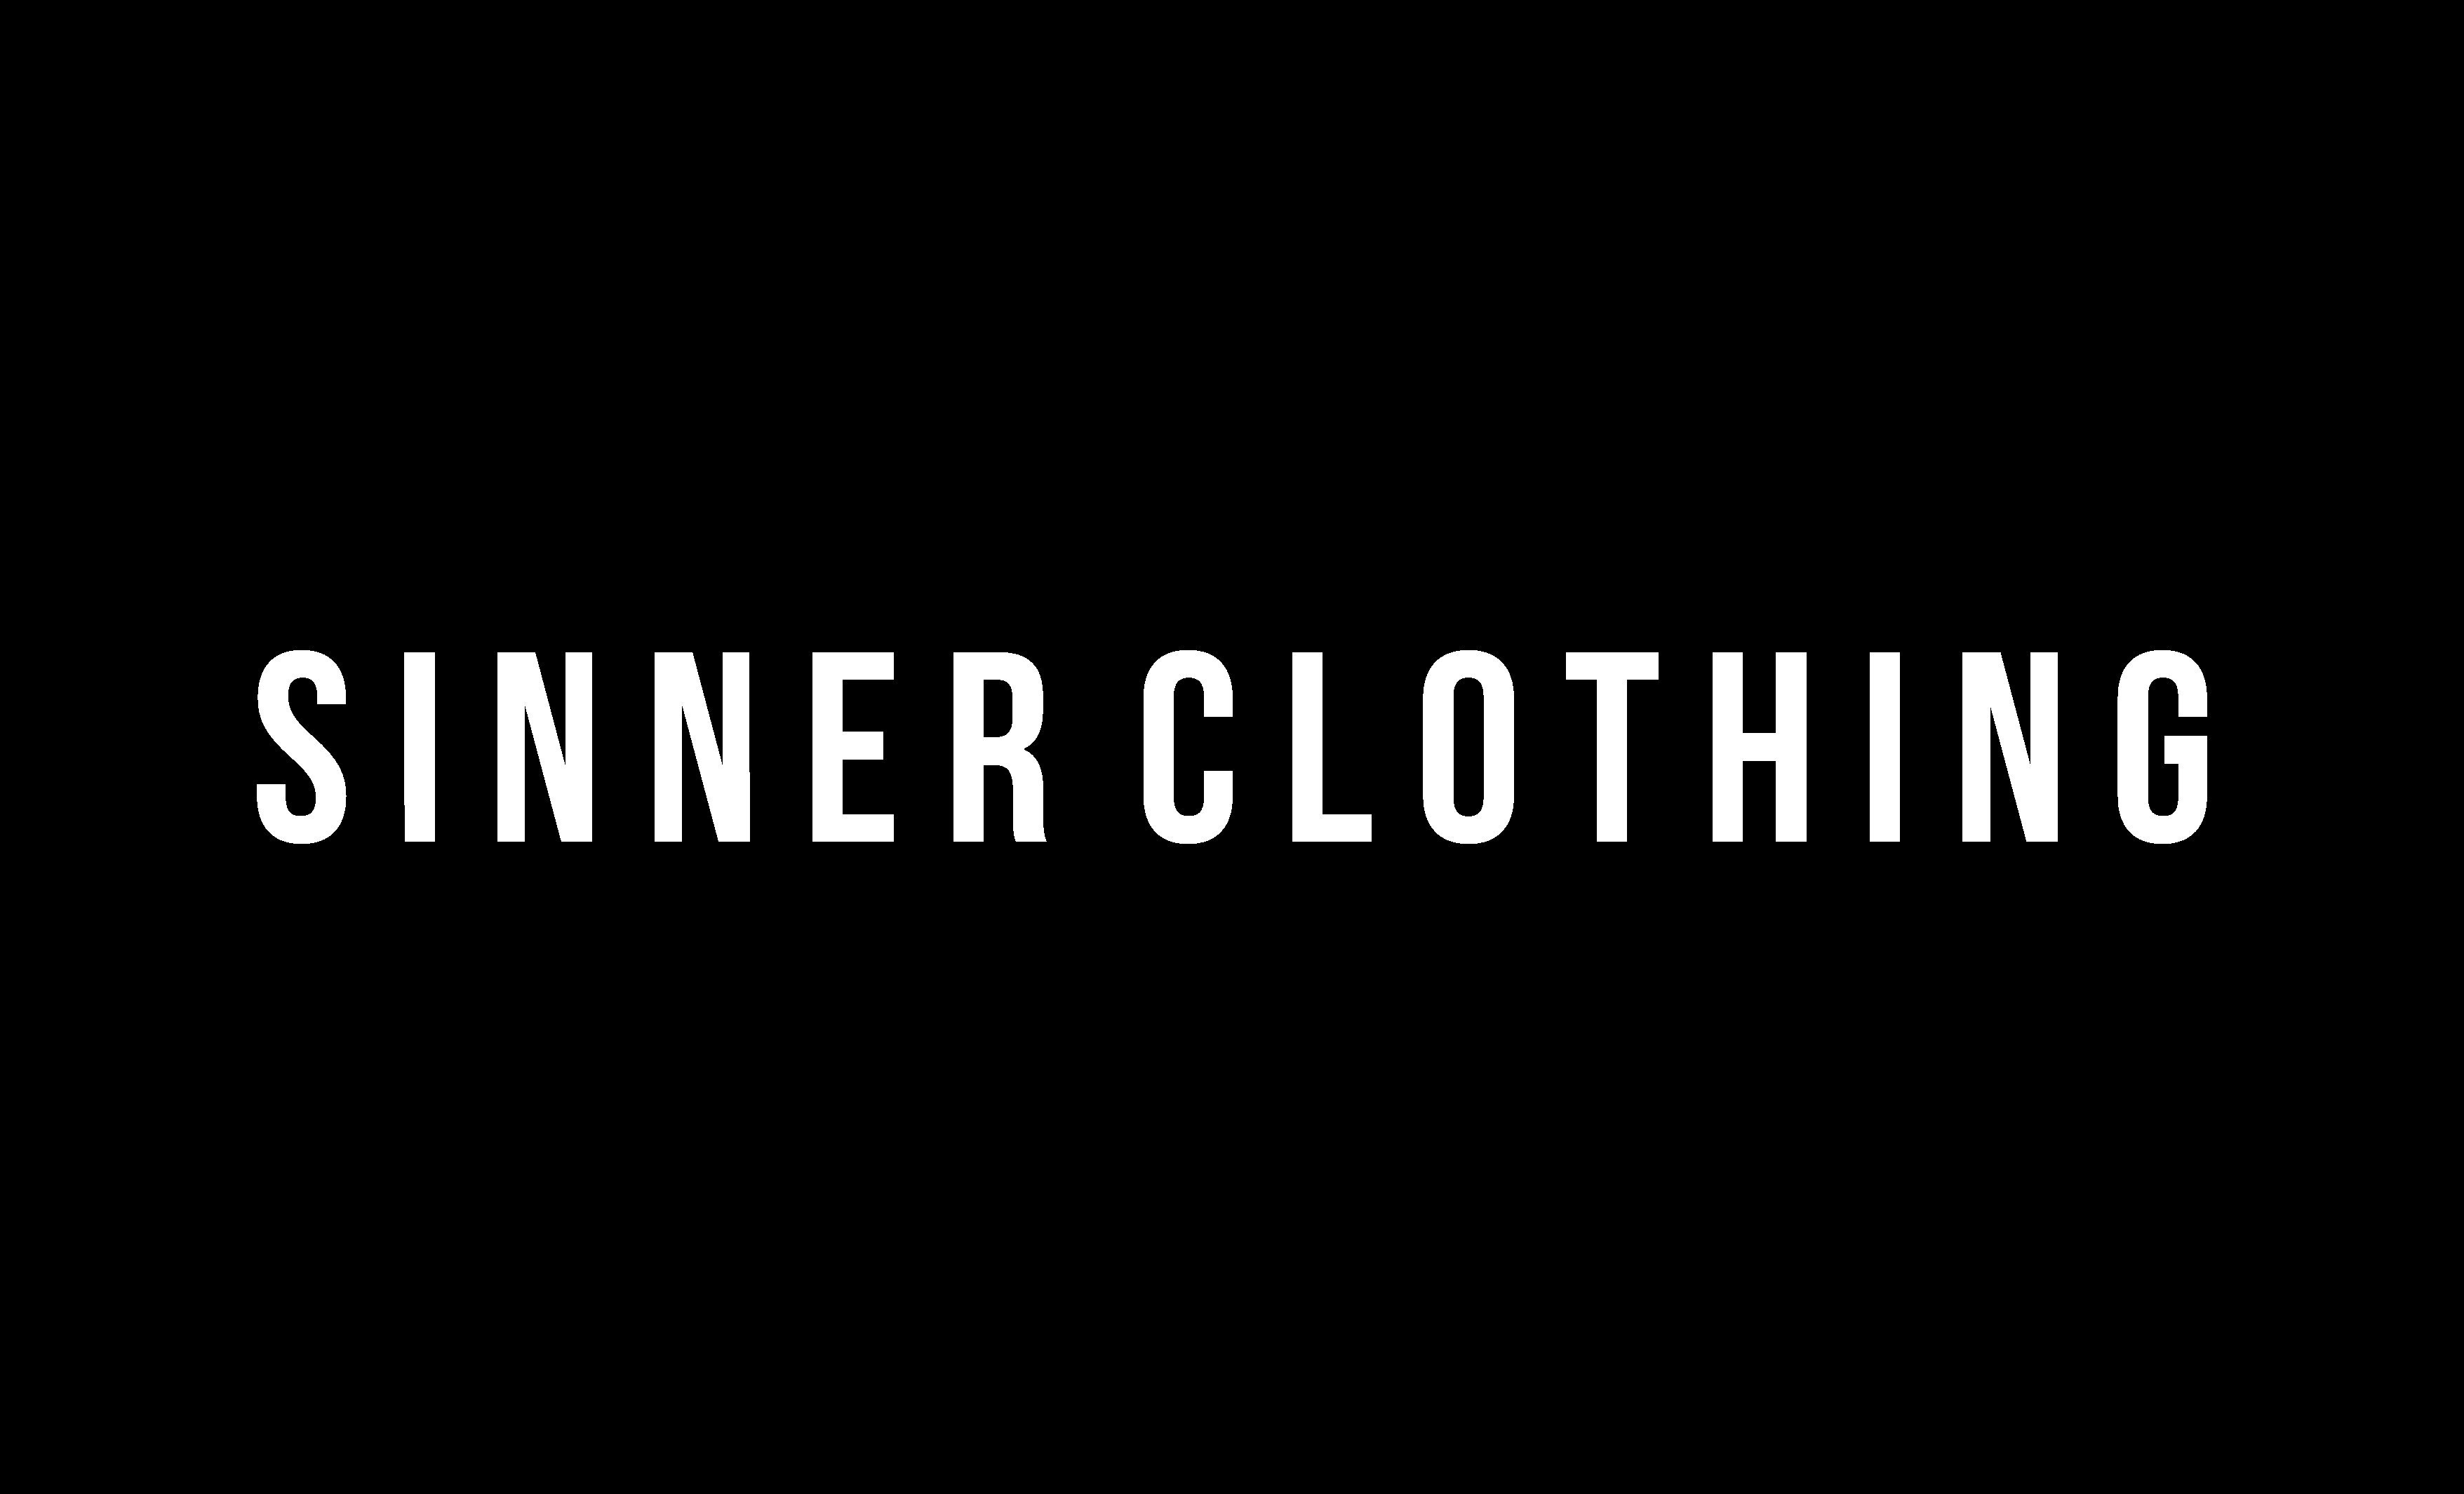 SINNER CLOTHING